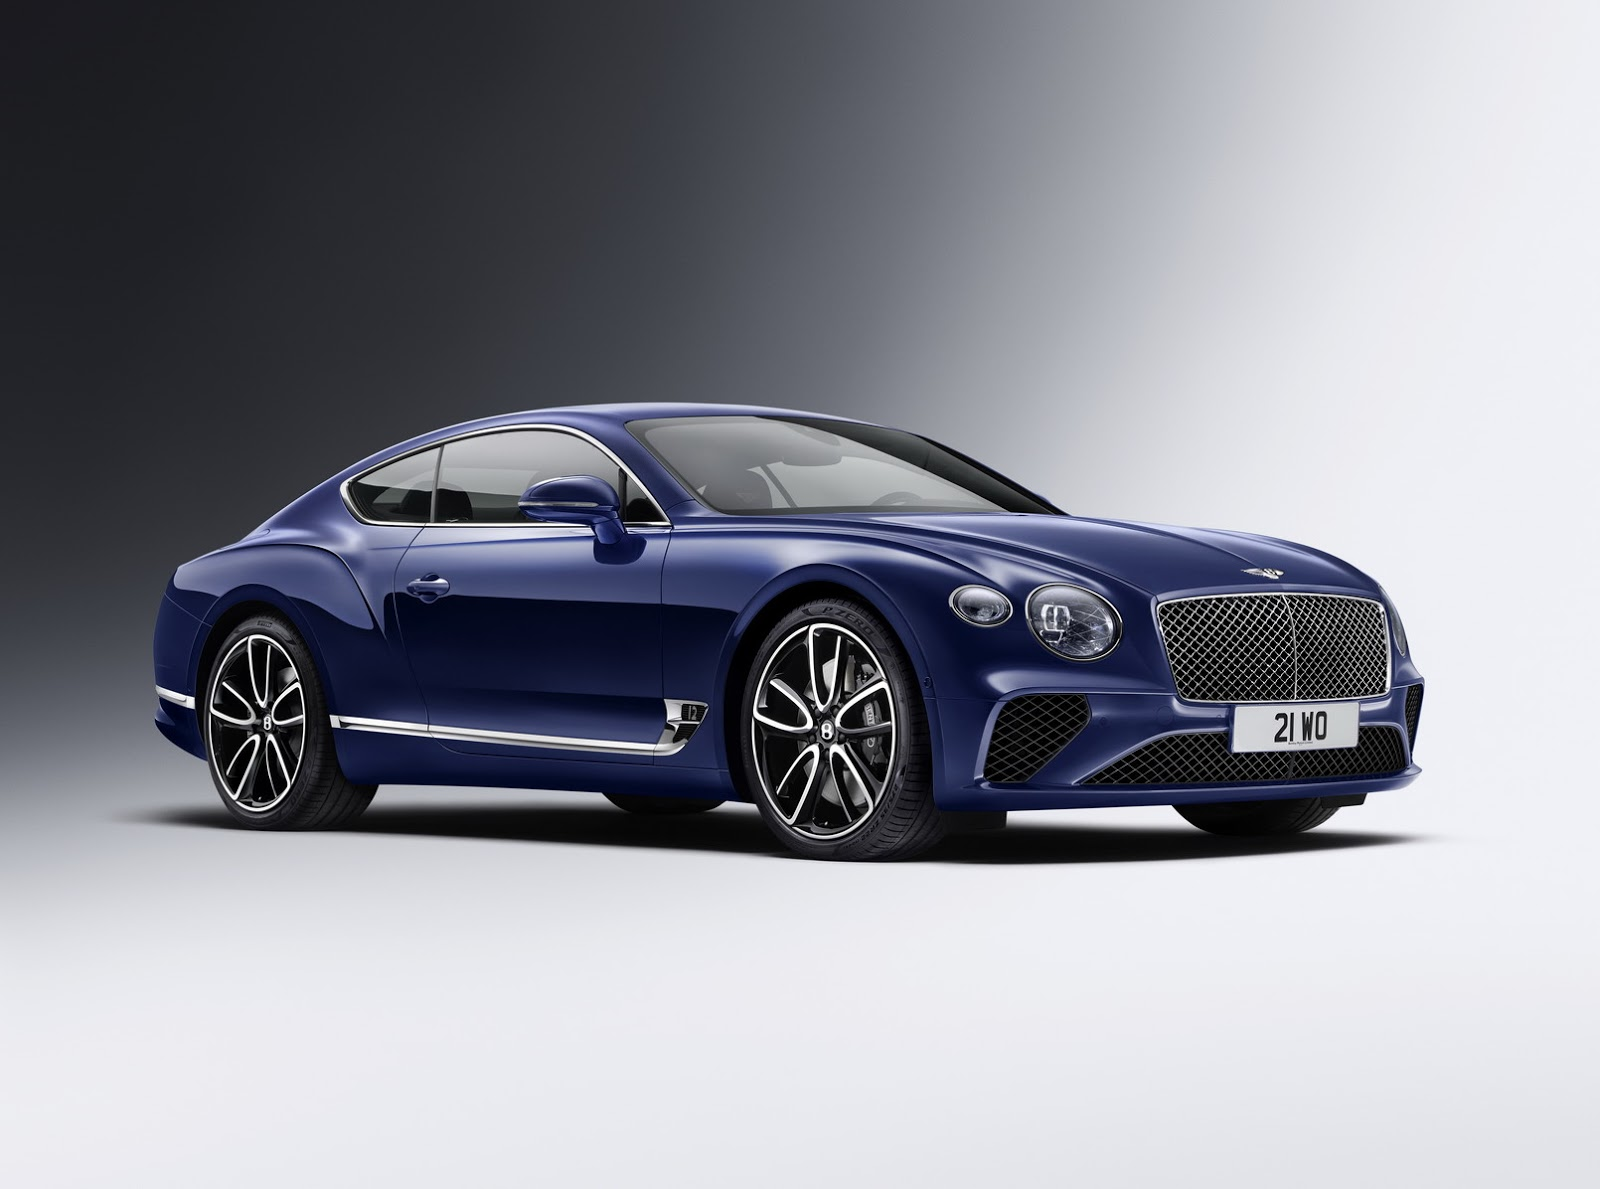 2018 Bentley Continental GT - Conti Talk - MyCarForum.com on jeep grand cherokee problems, toyota camry problems, toyota corolla problems, lexus sc problems, suzuki sx4 problems, lexus gs 350 problems, honda civic problems, mazda cx-7 problems, mitsubishi galant problems, subaru forester problems, cadillac sts problems, chrysler pt cruiser problems, audi a6 problems, nissan pathfinder problems, pontiac solstice problems, toyota sequoia problems, ford fusion problems, hyundai sonata problems, suzuki forenza problems, porsche boxster problems,